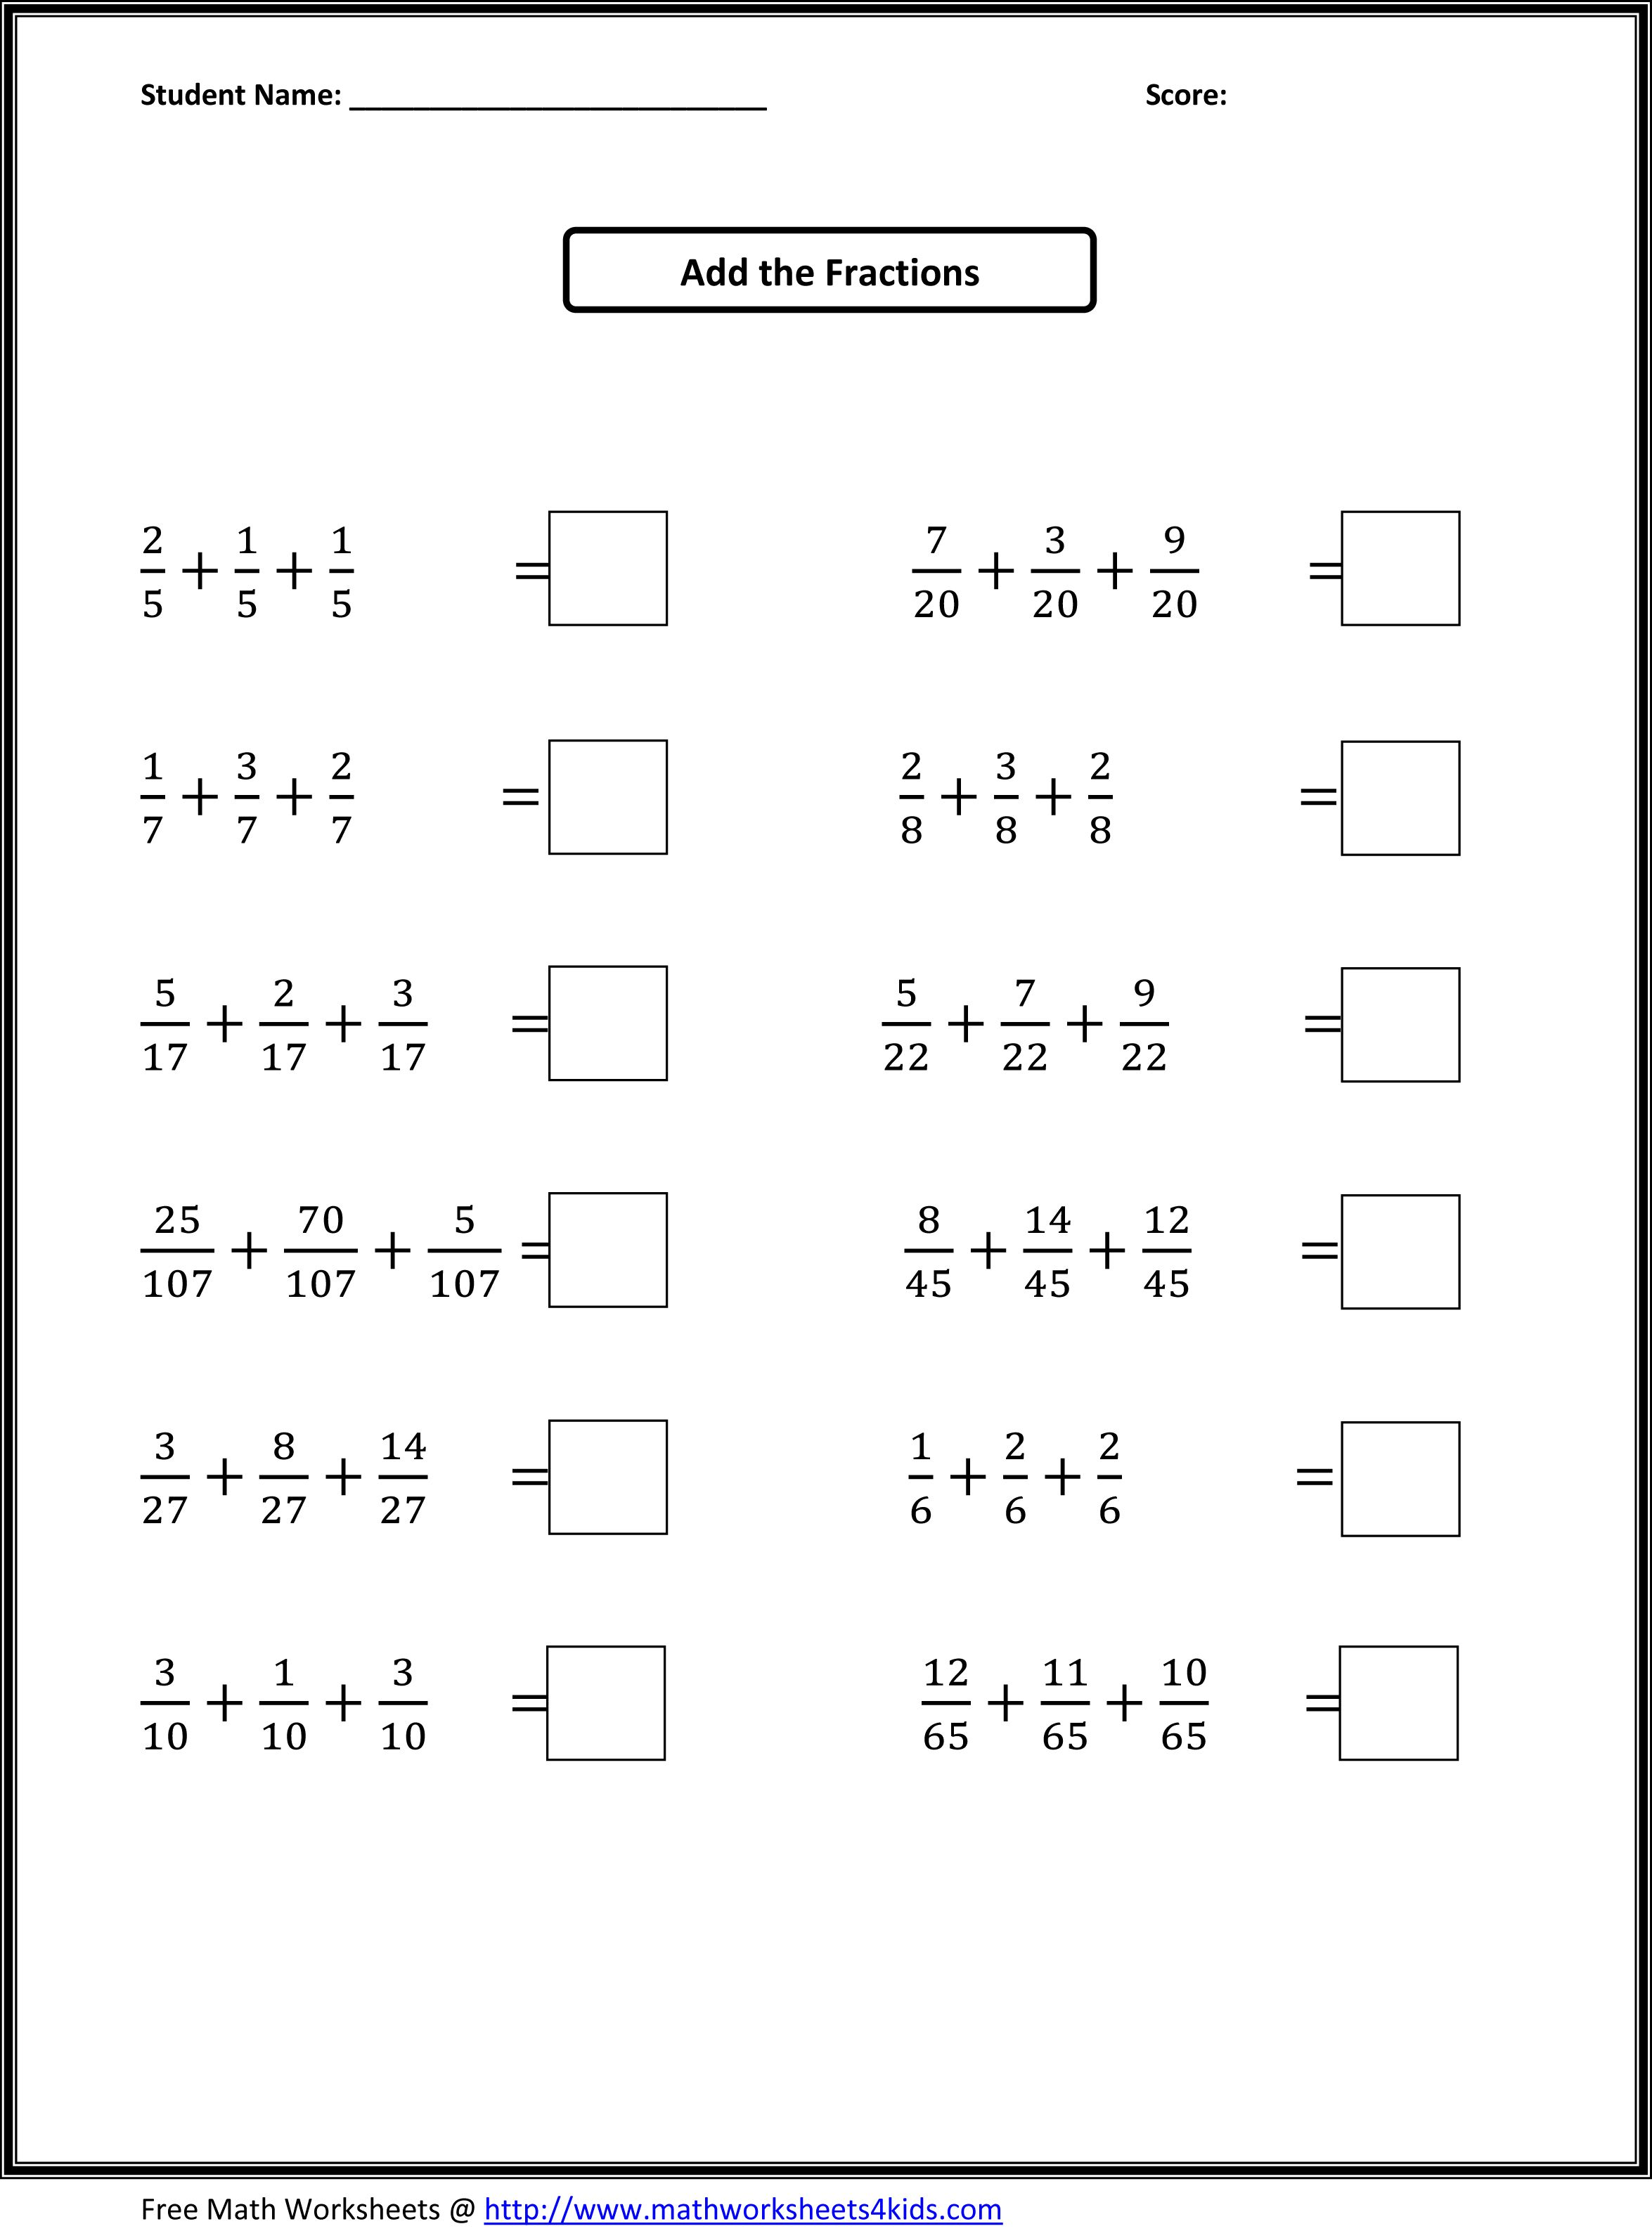 Worksheets Printable Fourth Grade Math Worksheets printable worksheets by grade level and skill teaching ideas fourth math worksheets